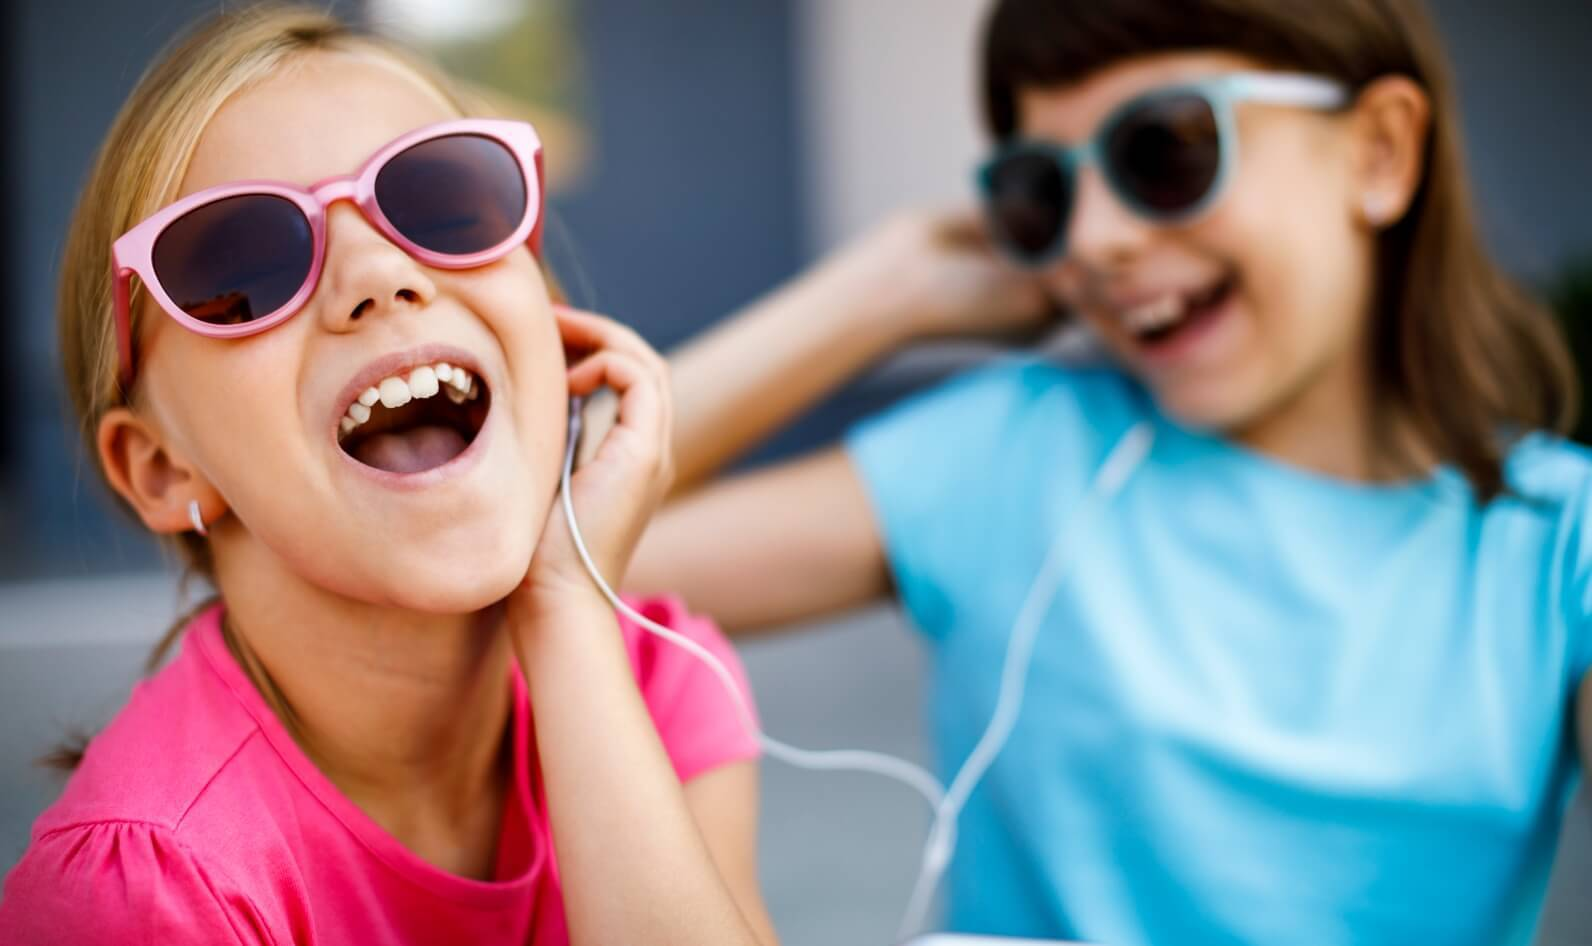 What Music Should My Child Listen To? |… | PBS KIDS for Parents